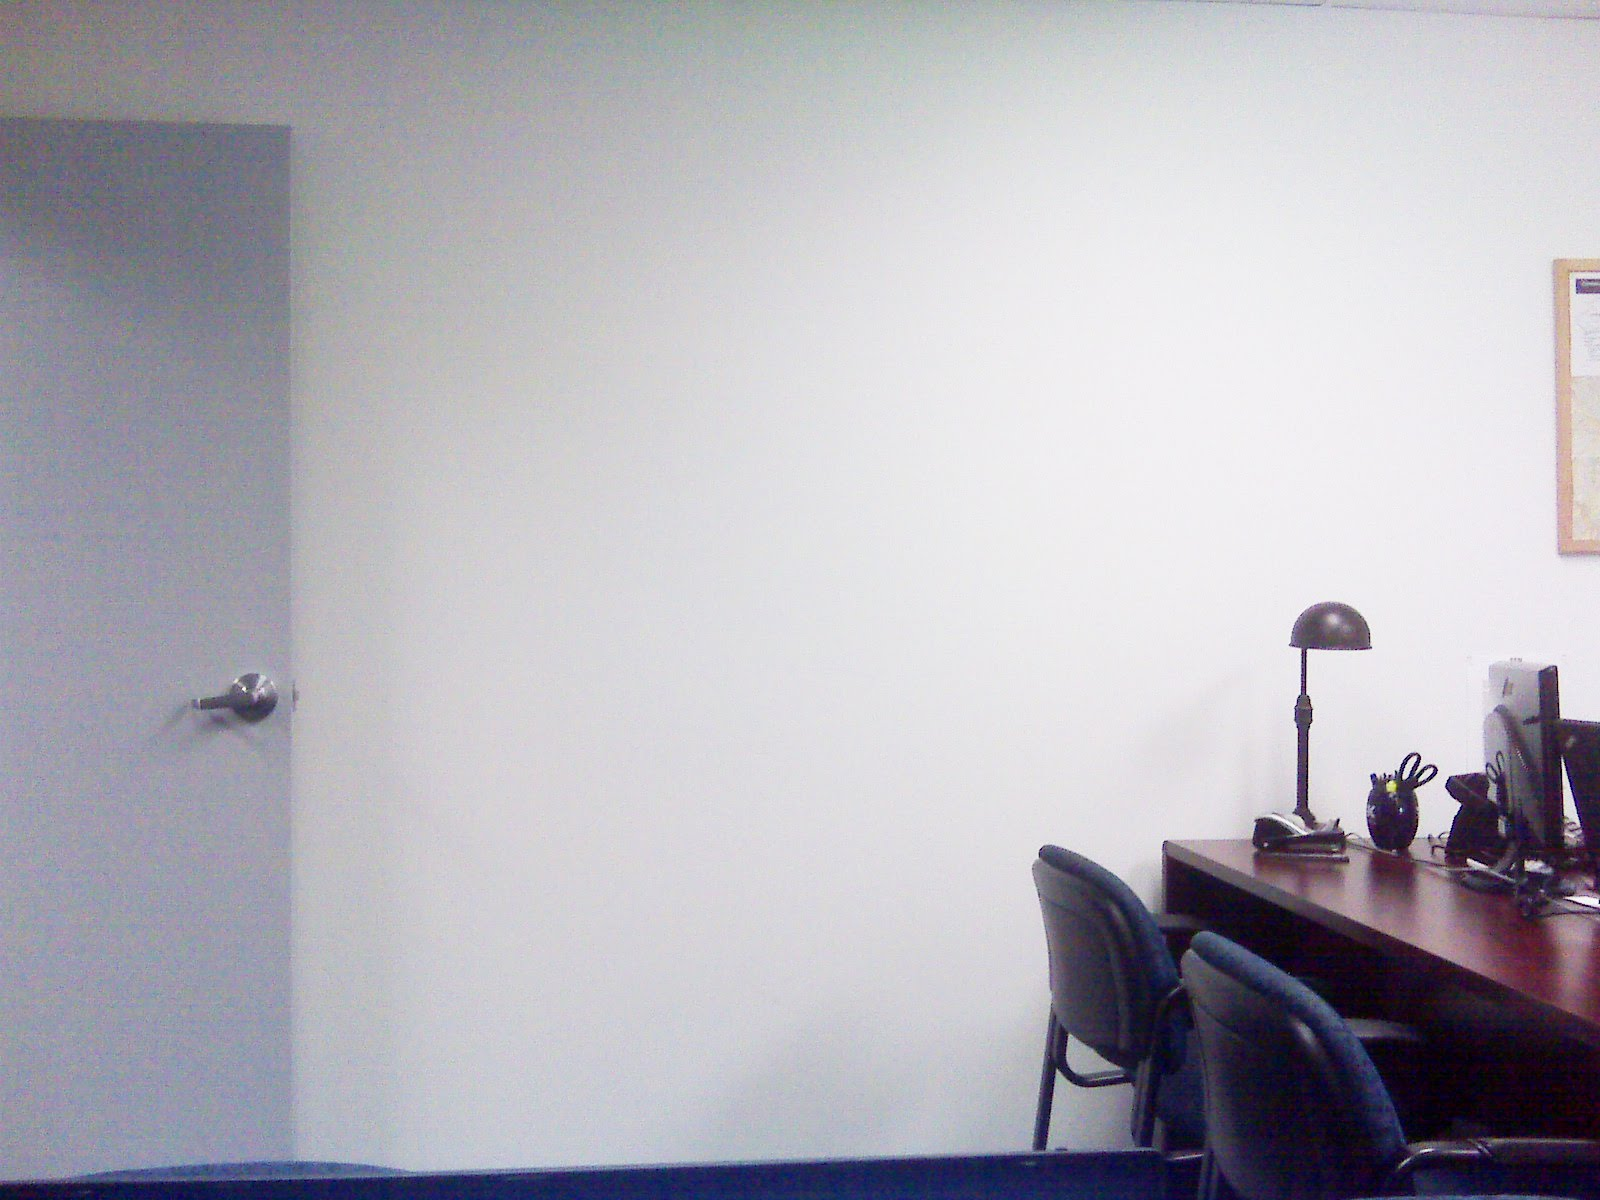 Attrayant Falls Design: Design Dilemma: How To Turn A Dreary Office Into A Cool  Upbeat Space